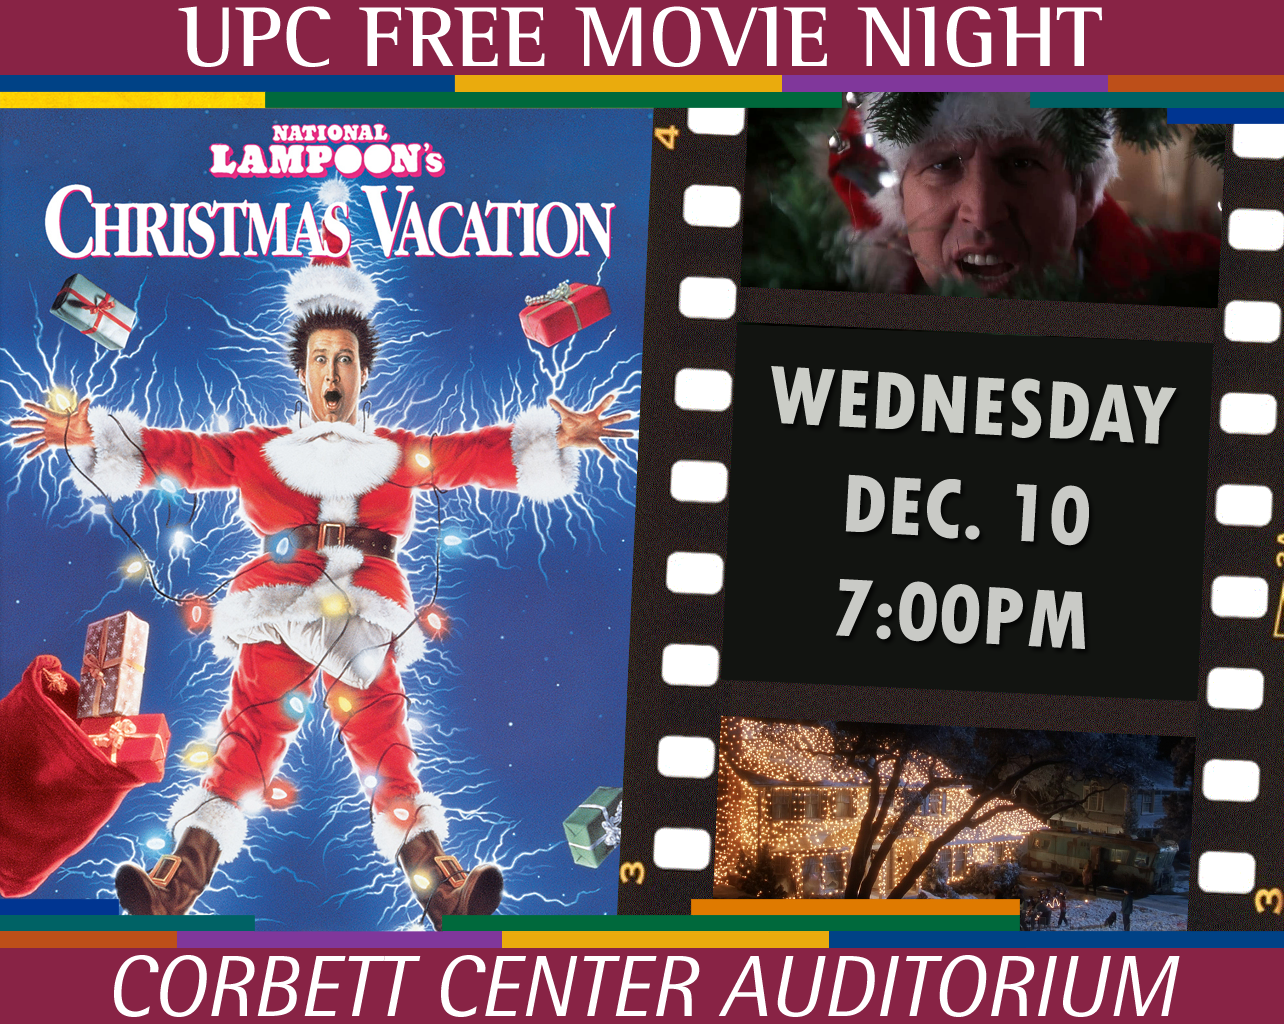 Free Screening of CHRISTMAS VACATION 7pm Nov. 12 at Corbett Center Auditorium